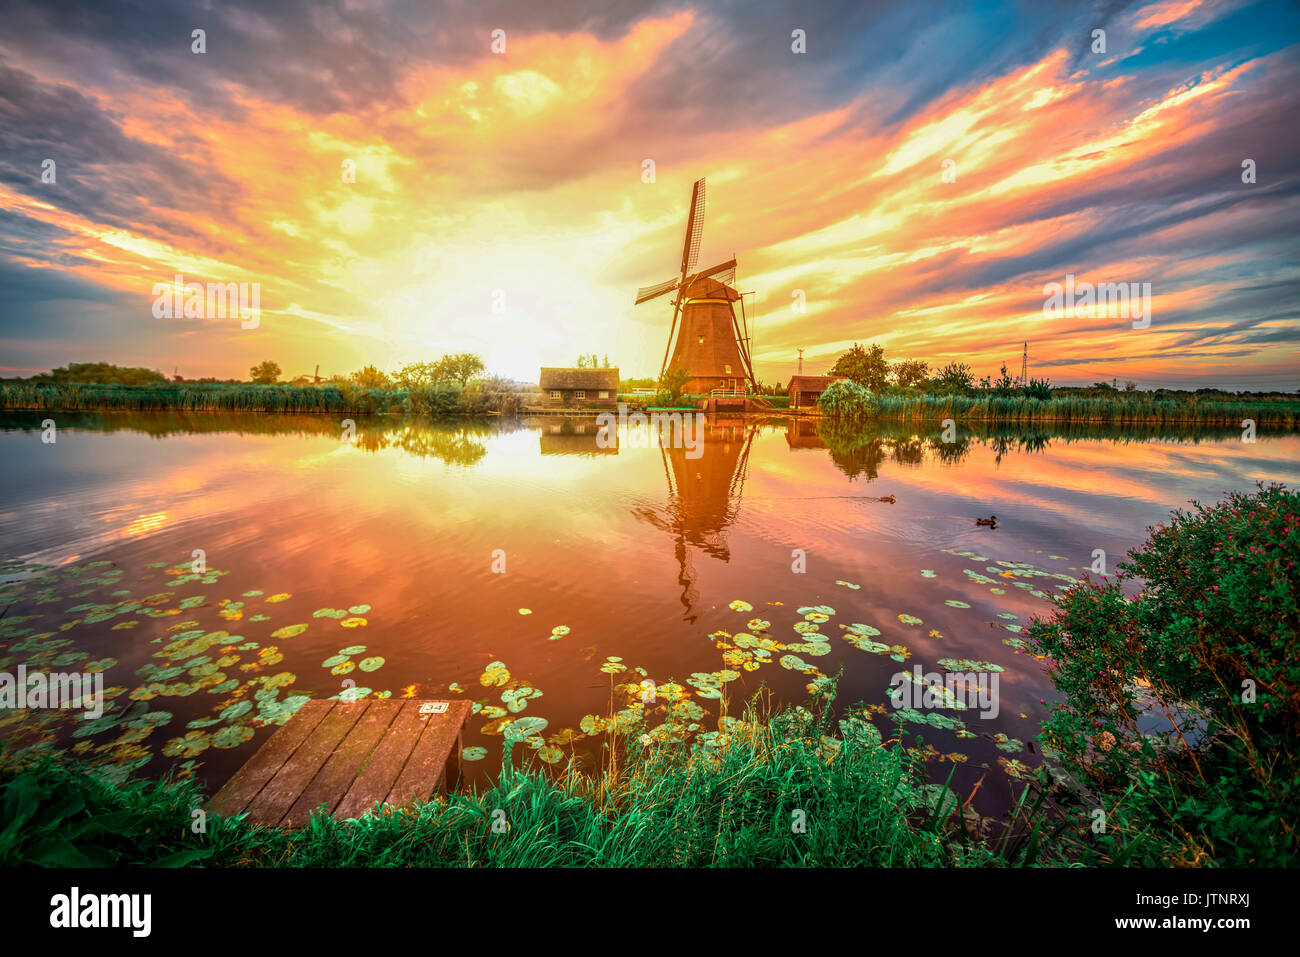 Sunrise on the Kinderdijk windmill built in 17 century, the UNESCO world heritage monuments in Alblasserdam, South West of Rotterdam, Netherlands - Stock Image